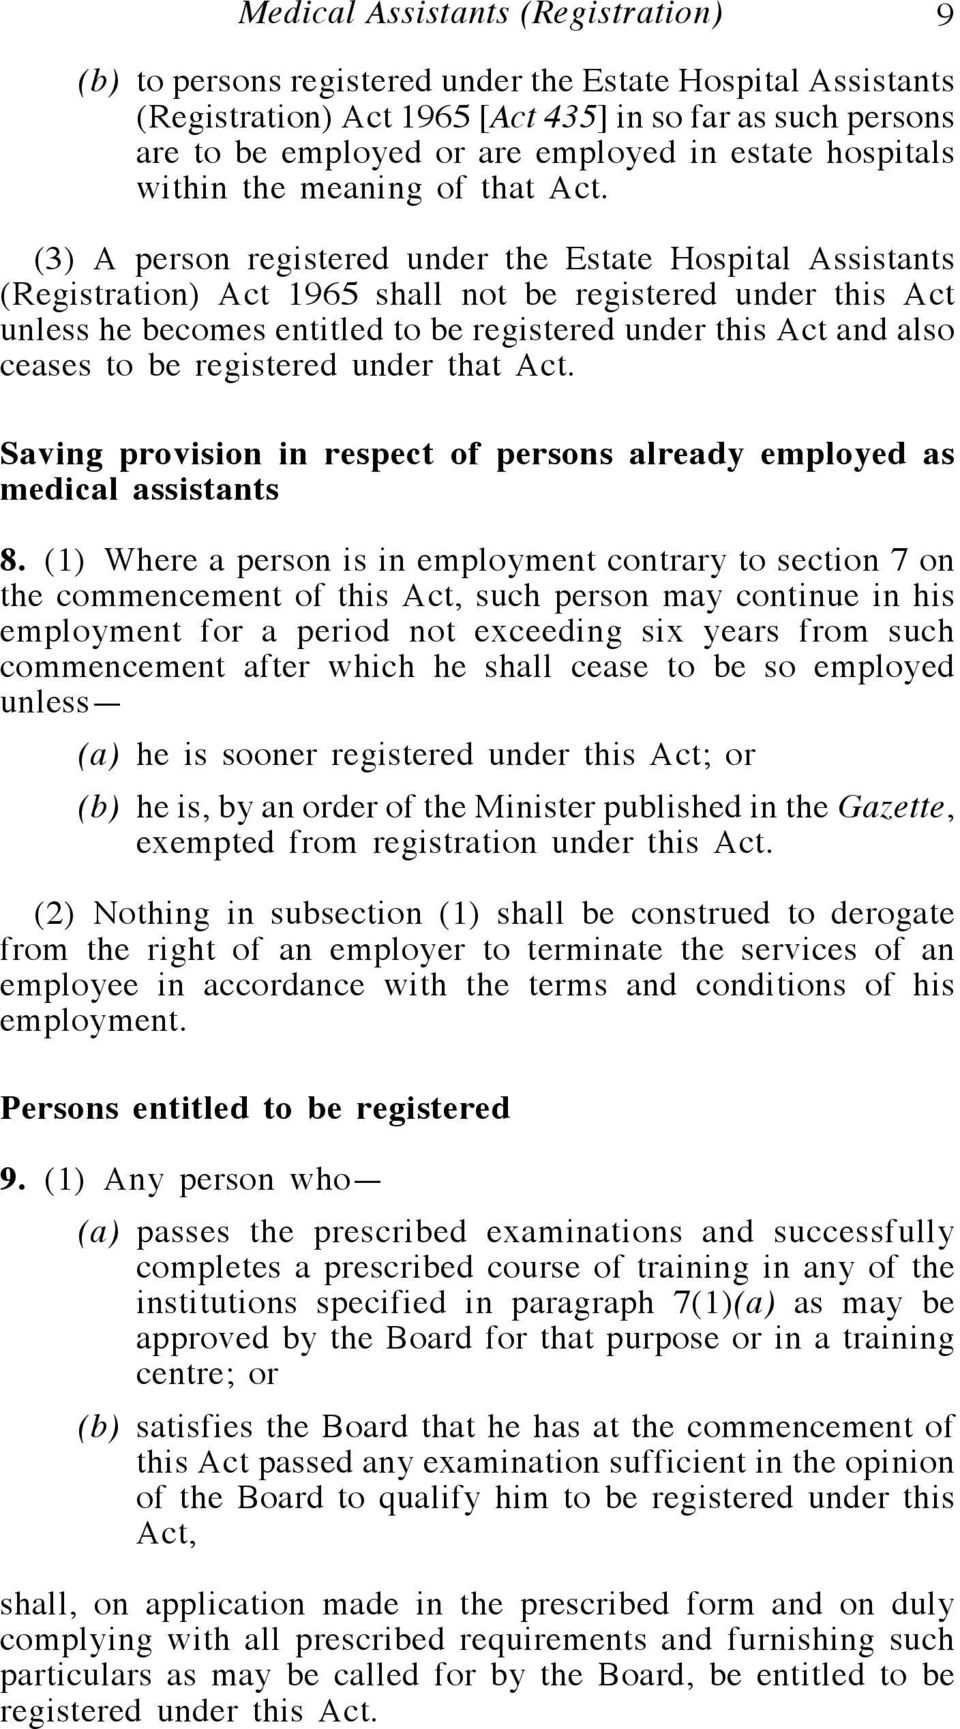 (3) A person registered under the Estate Hospital Assistants (Registration) Act 1965 shall not be registered under this Act unless he becomes entitled to be registered under this Act and also ceases